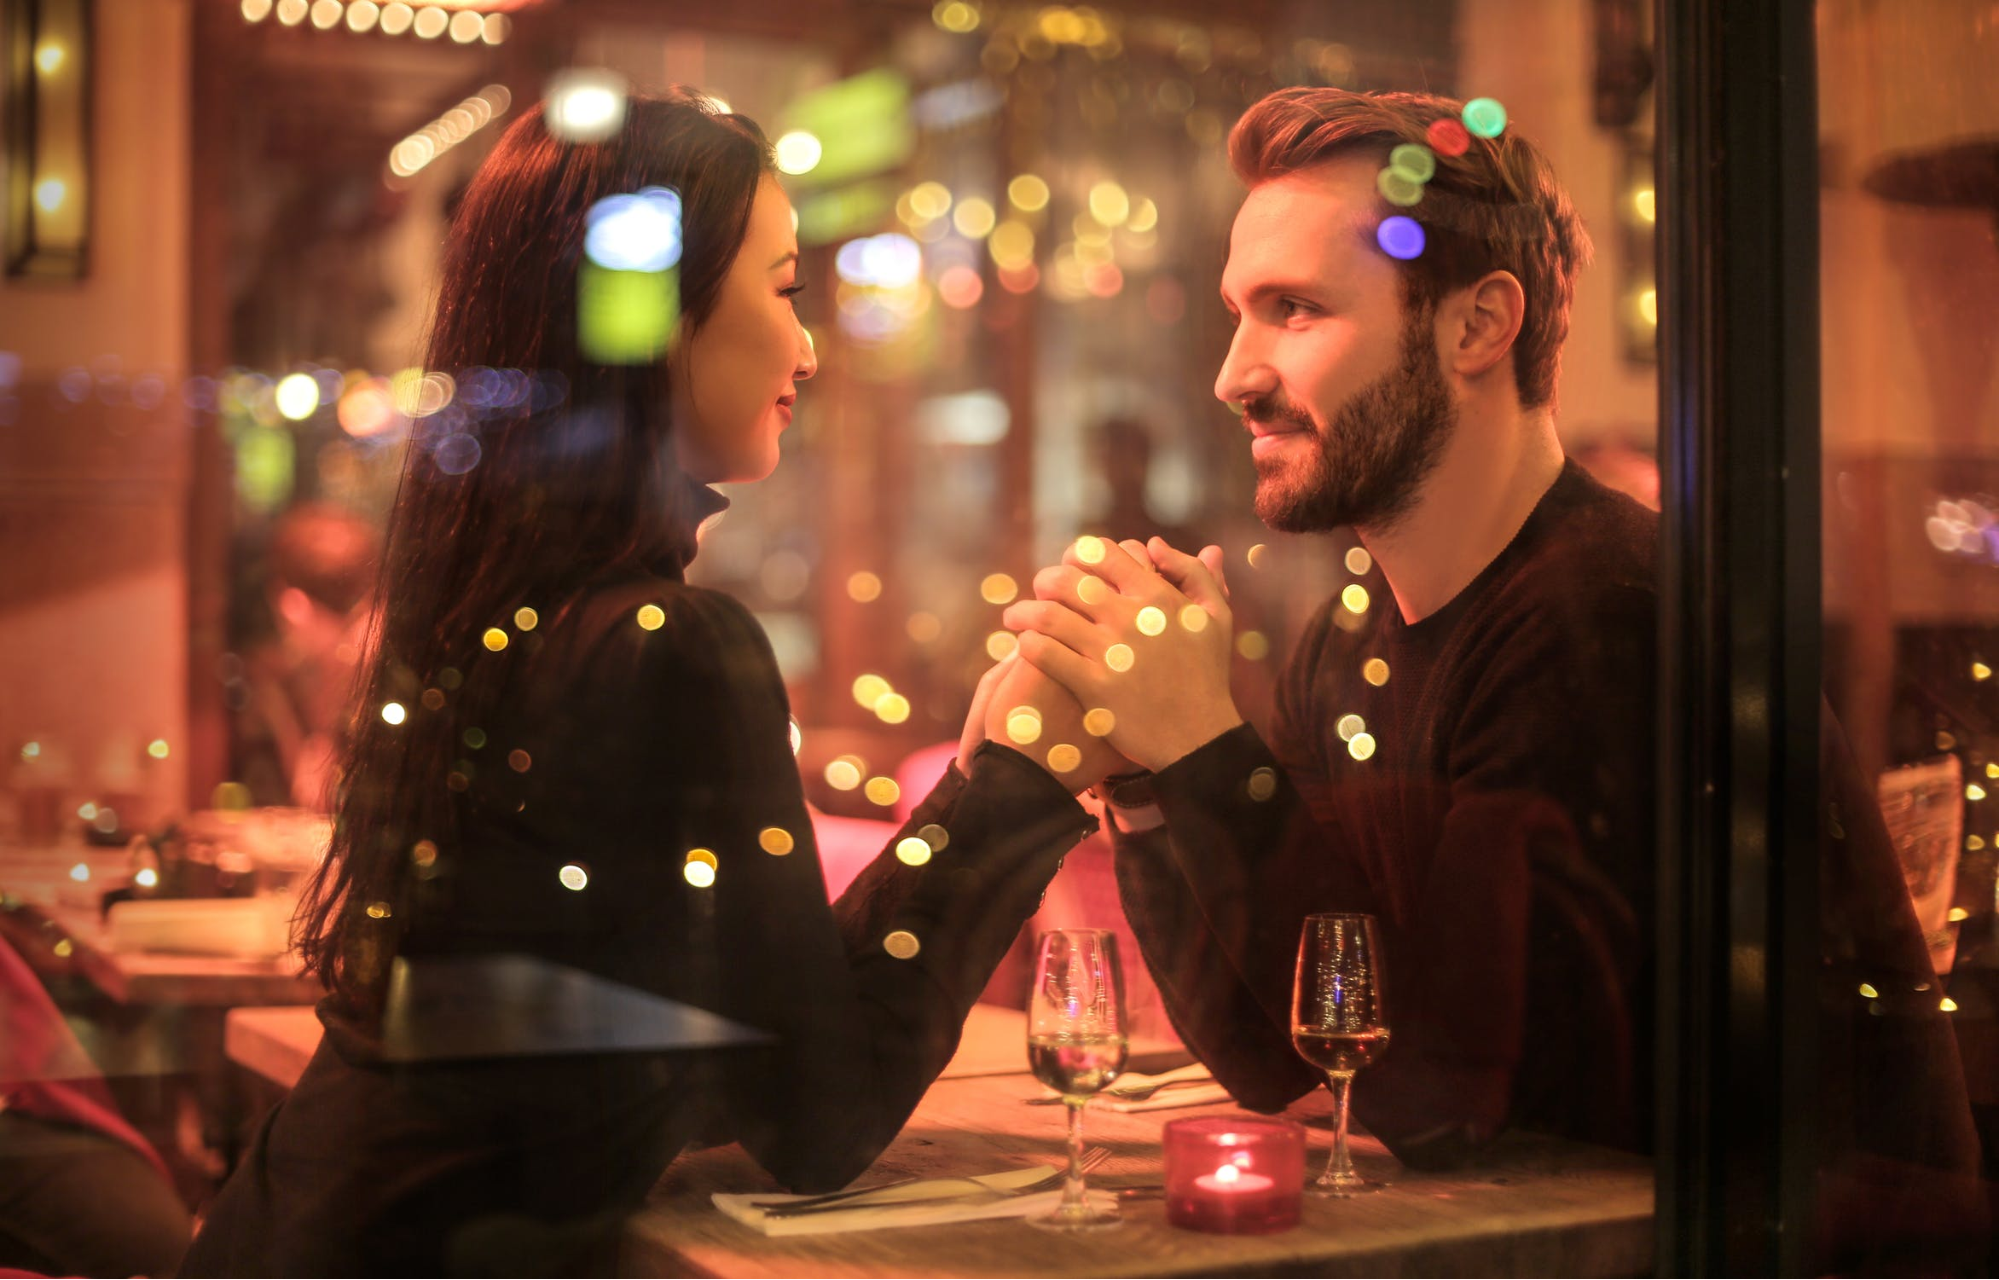 Plan your perfect date night and celebrate Valentine's Day with your special someone in Anaheim, CA.